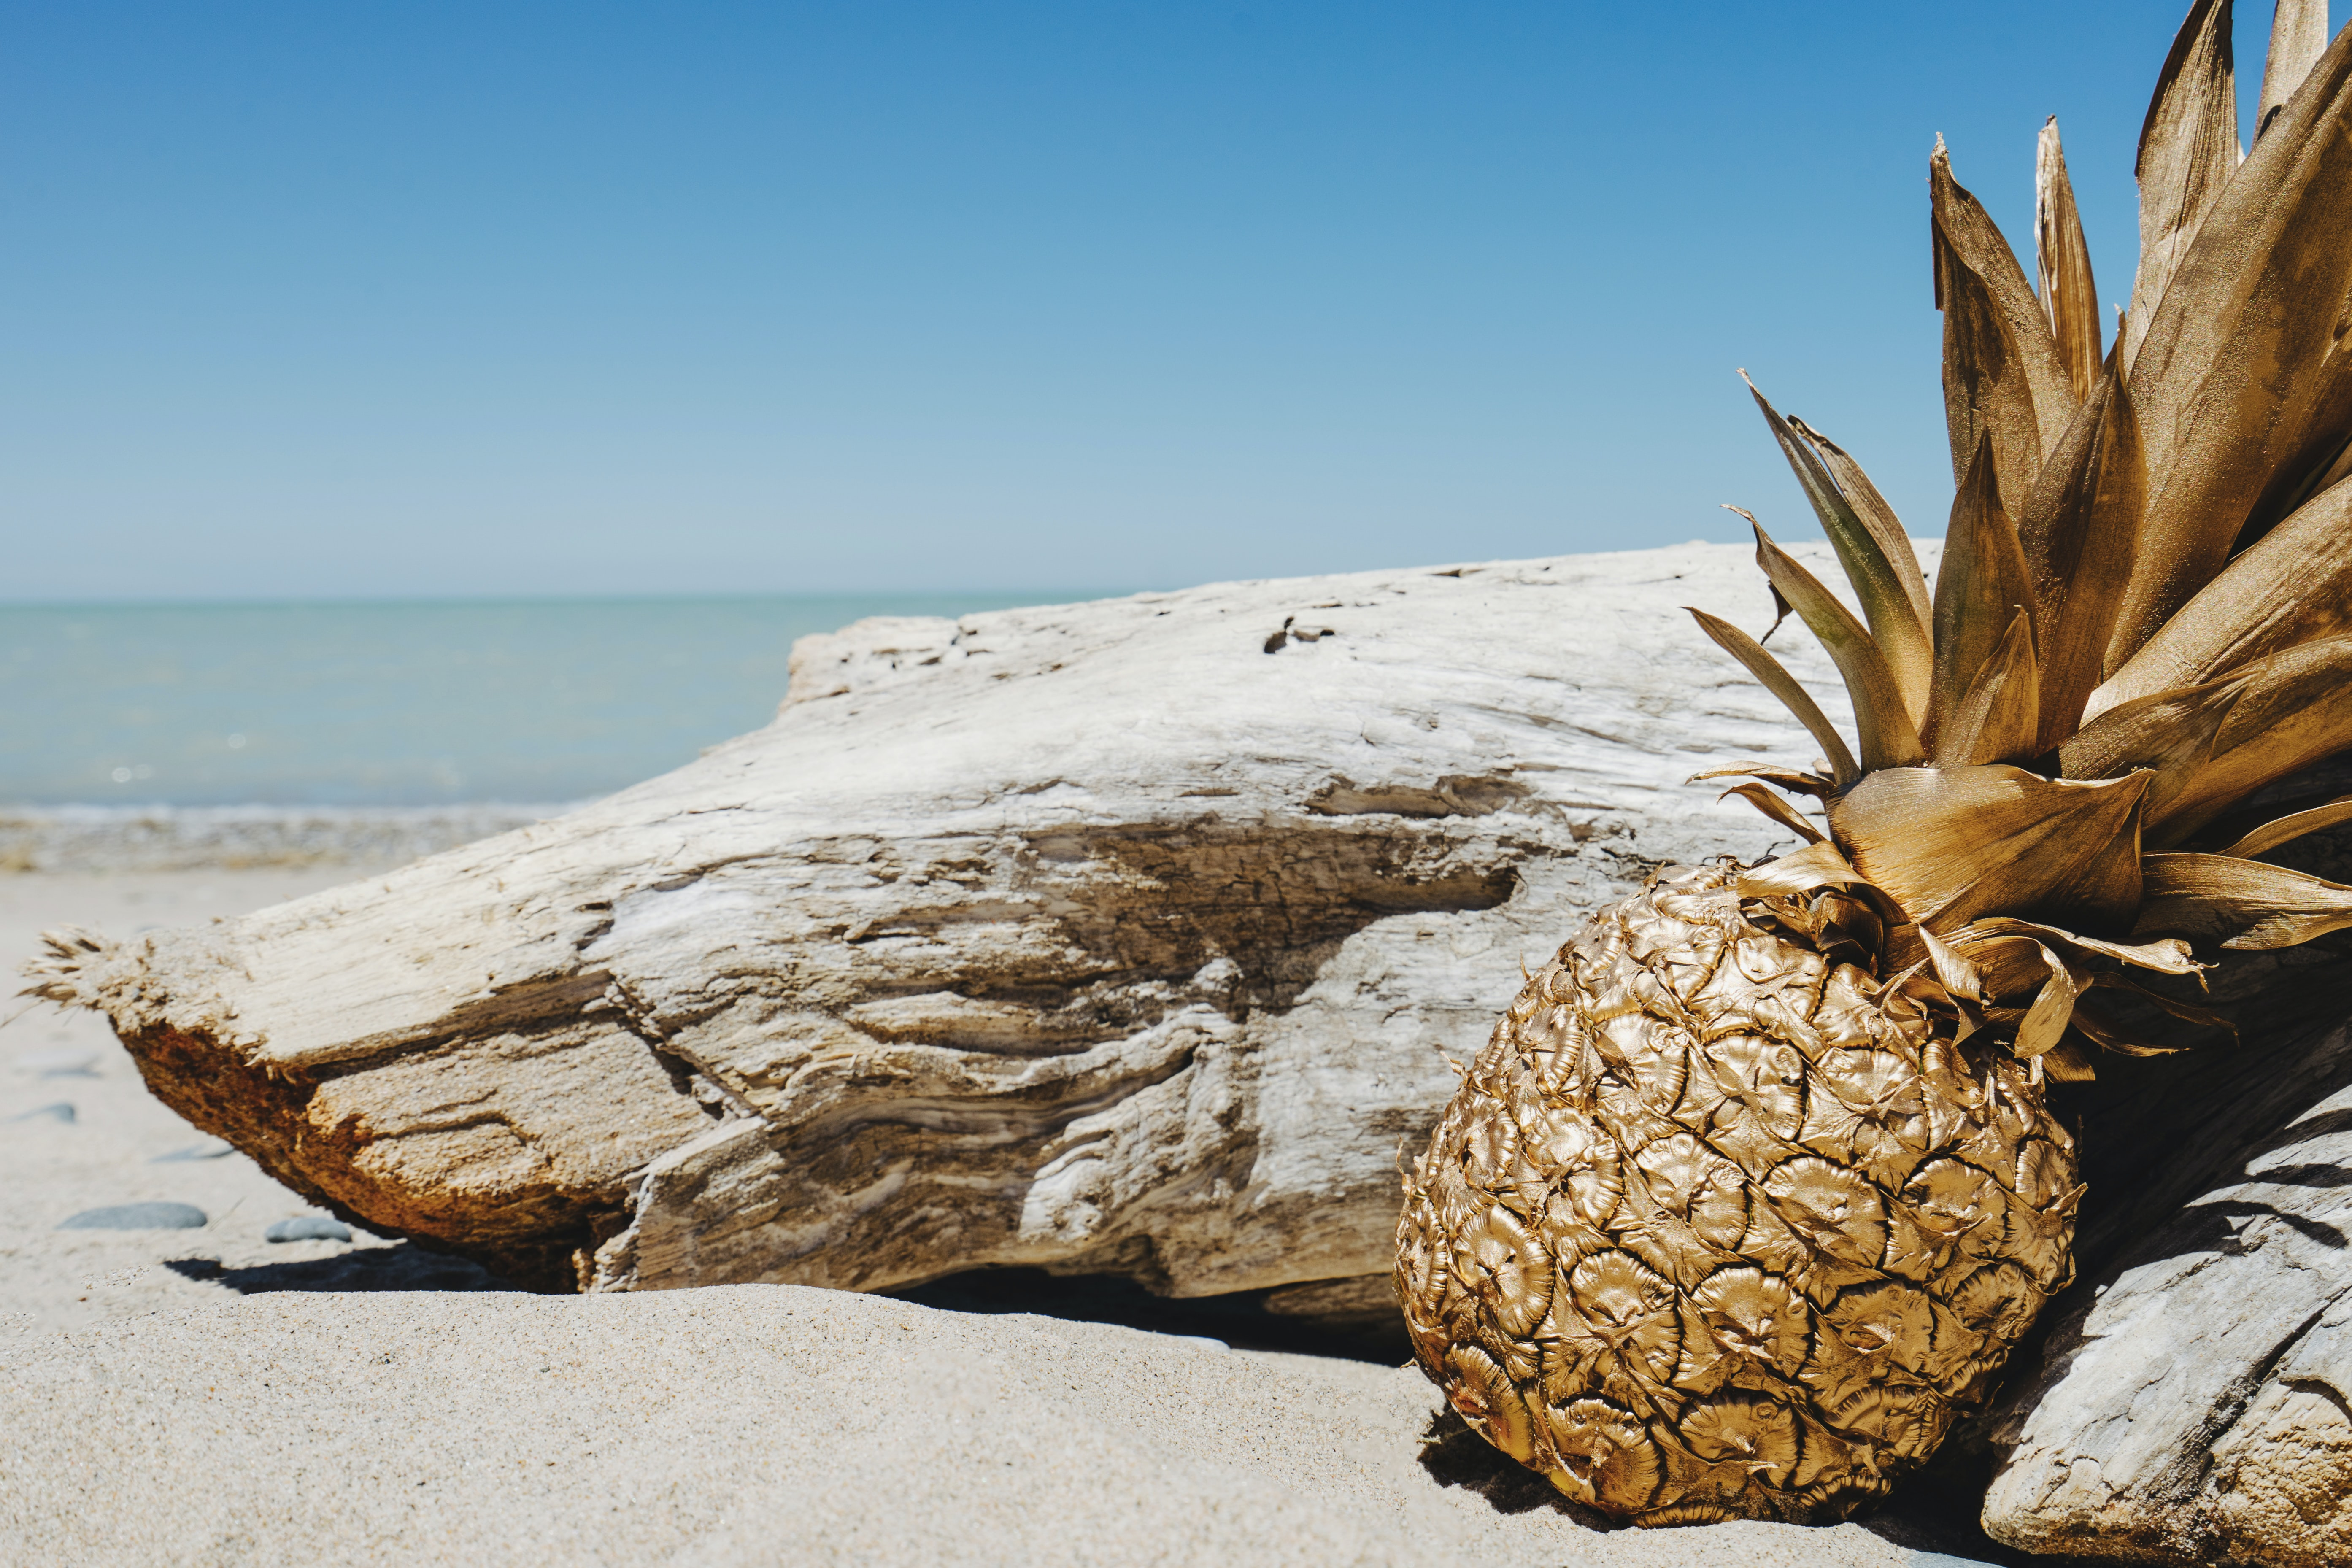 A gold-painted pineapple leaning against a piece of driftwood on a sandy beach